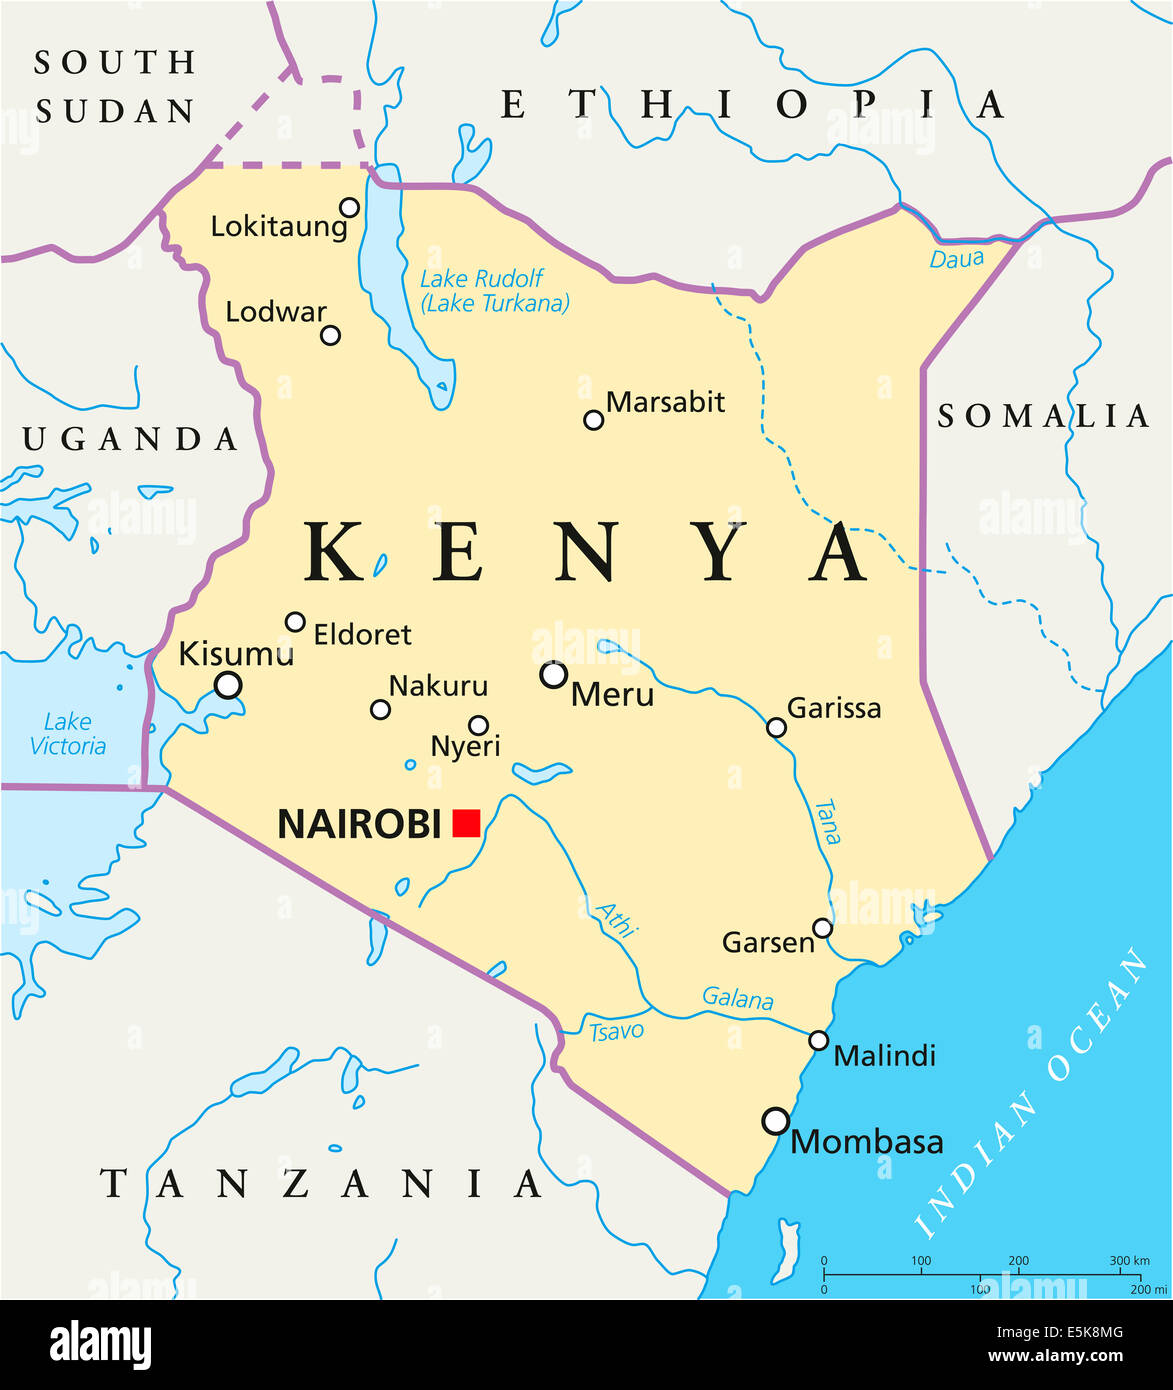 Kenya Political Map With Capital Nairobi, National Borders, Most Important  Cities, Rivers And